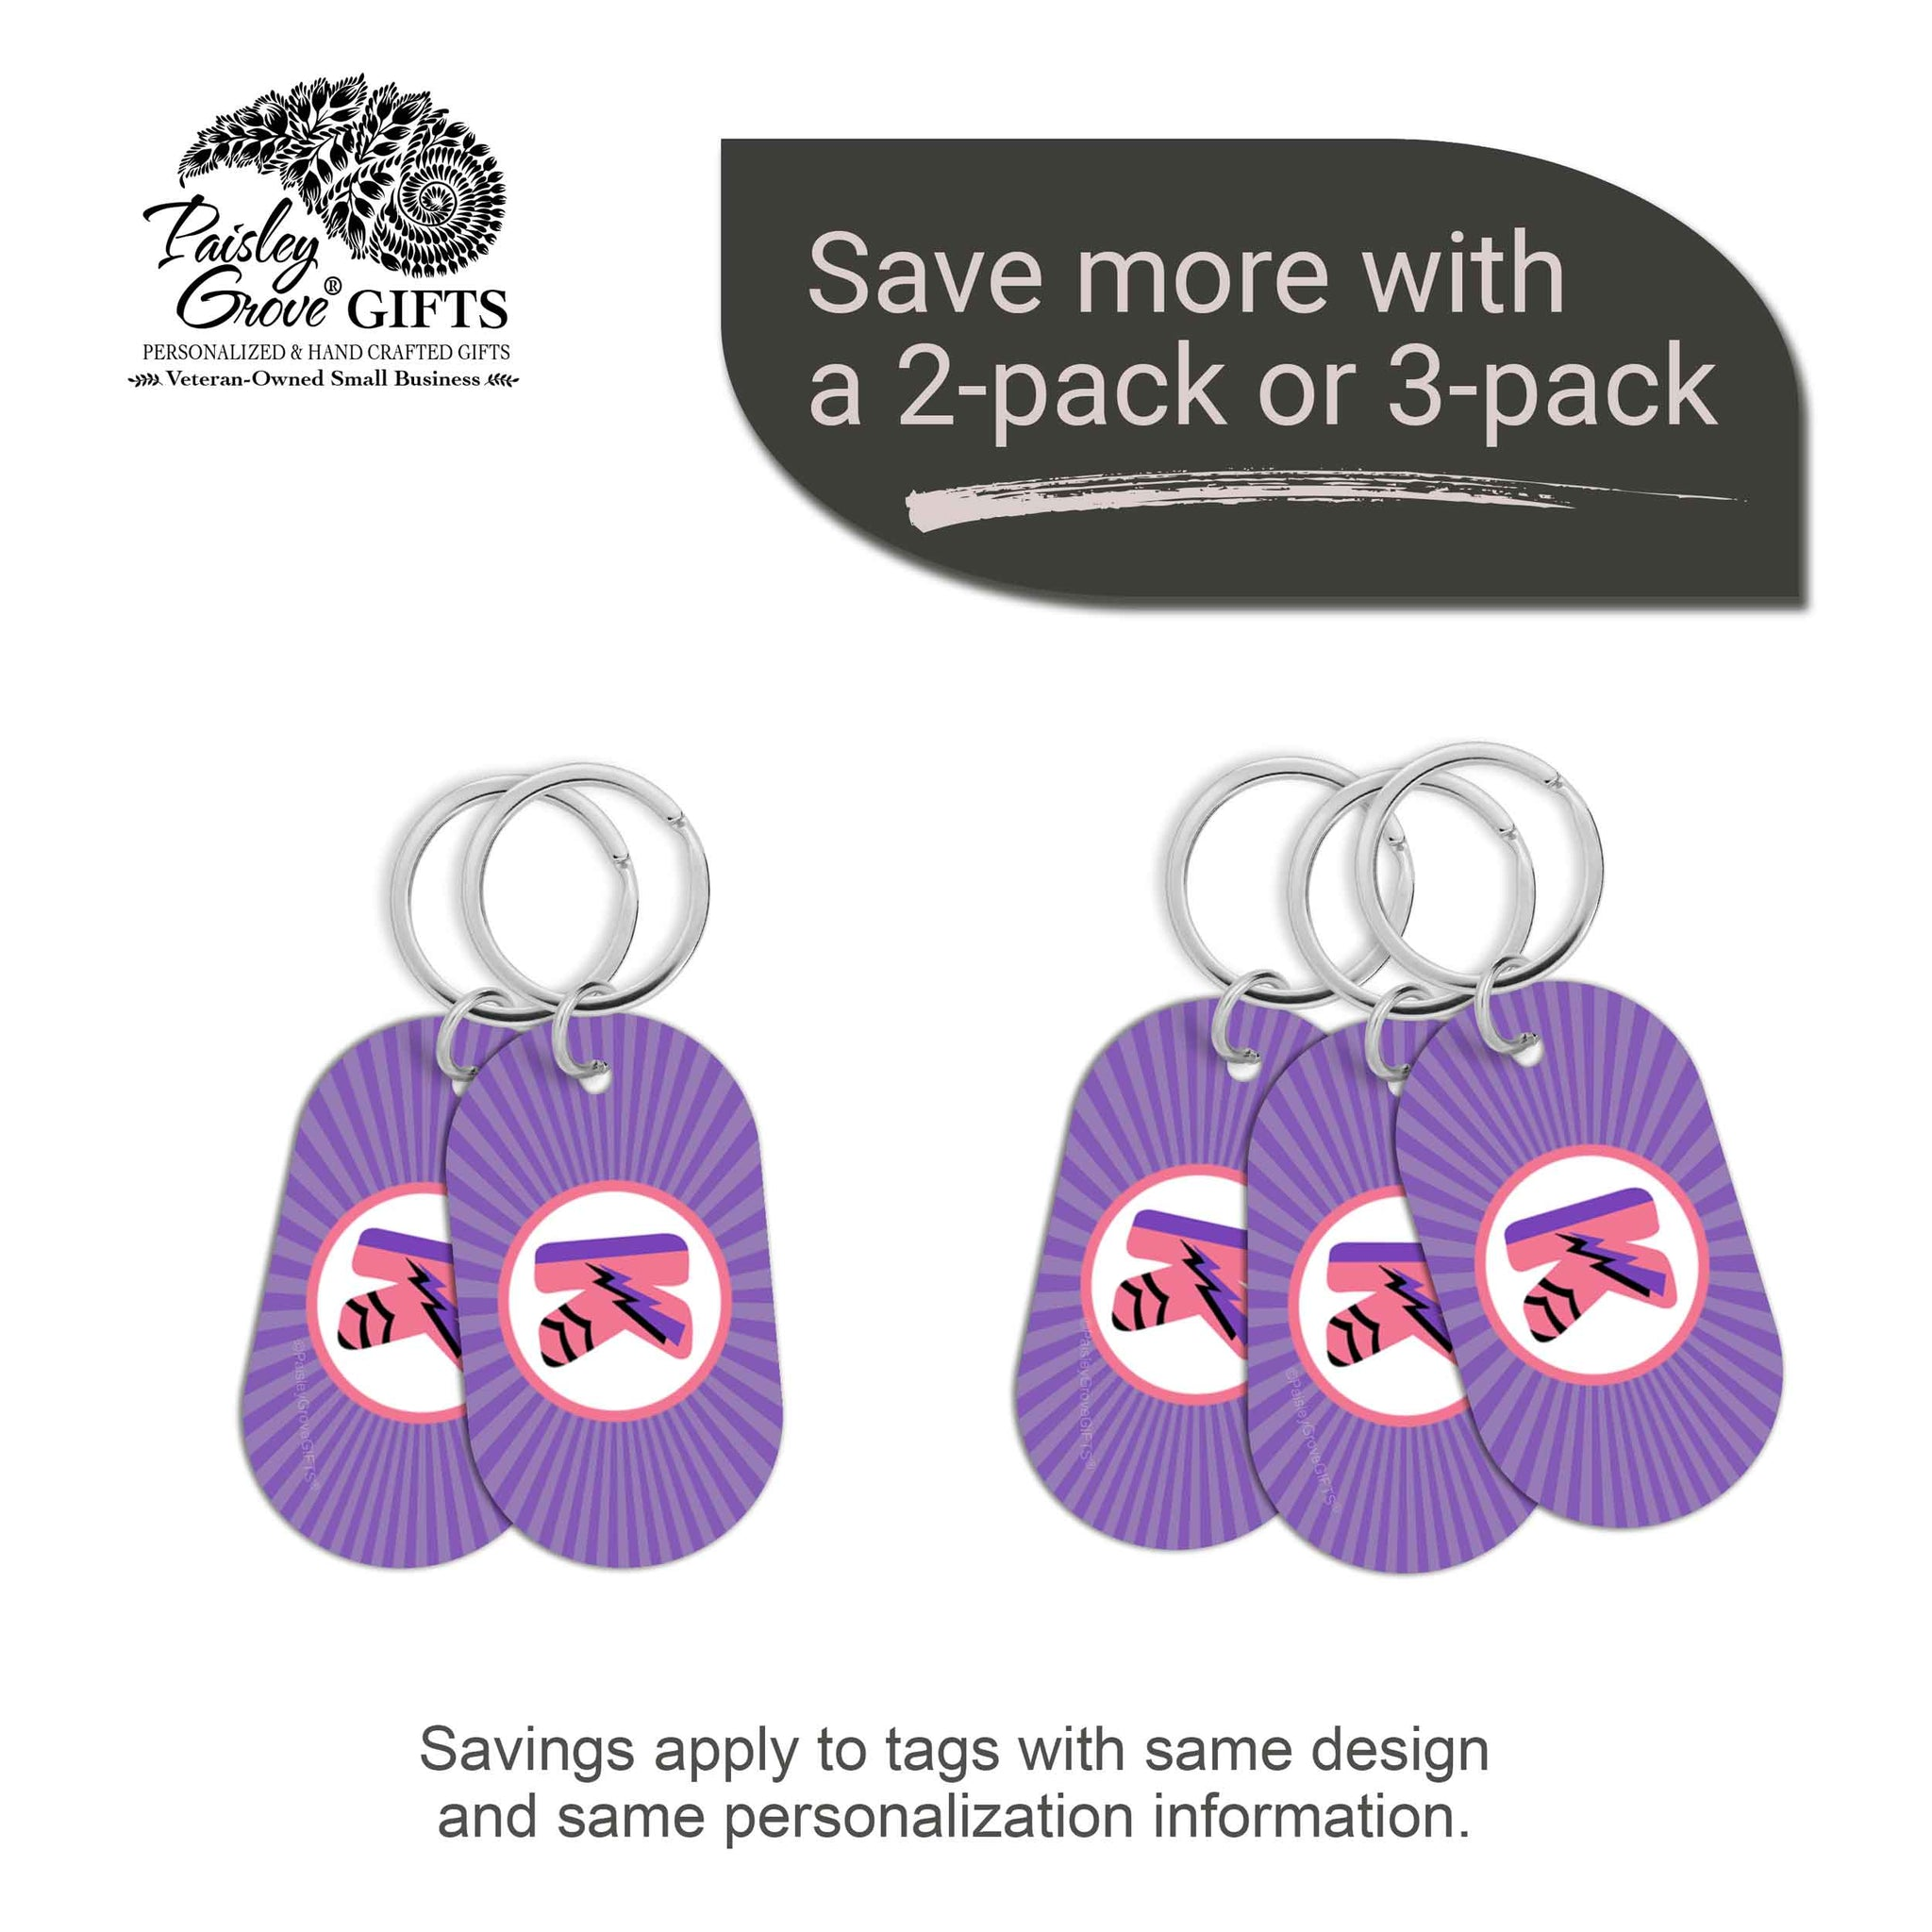 CopyrightPaisleyGroveGIFTS S070b4 Personalized bag ID tags for luggage or bags 2 or 3 pack option savings